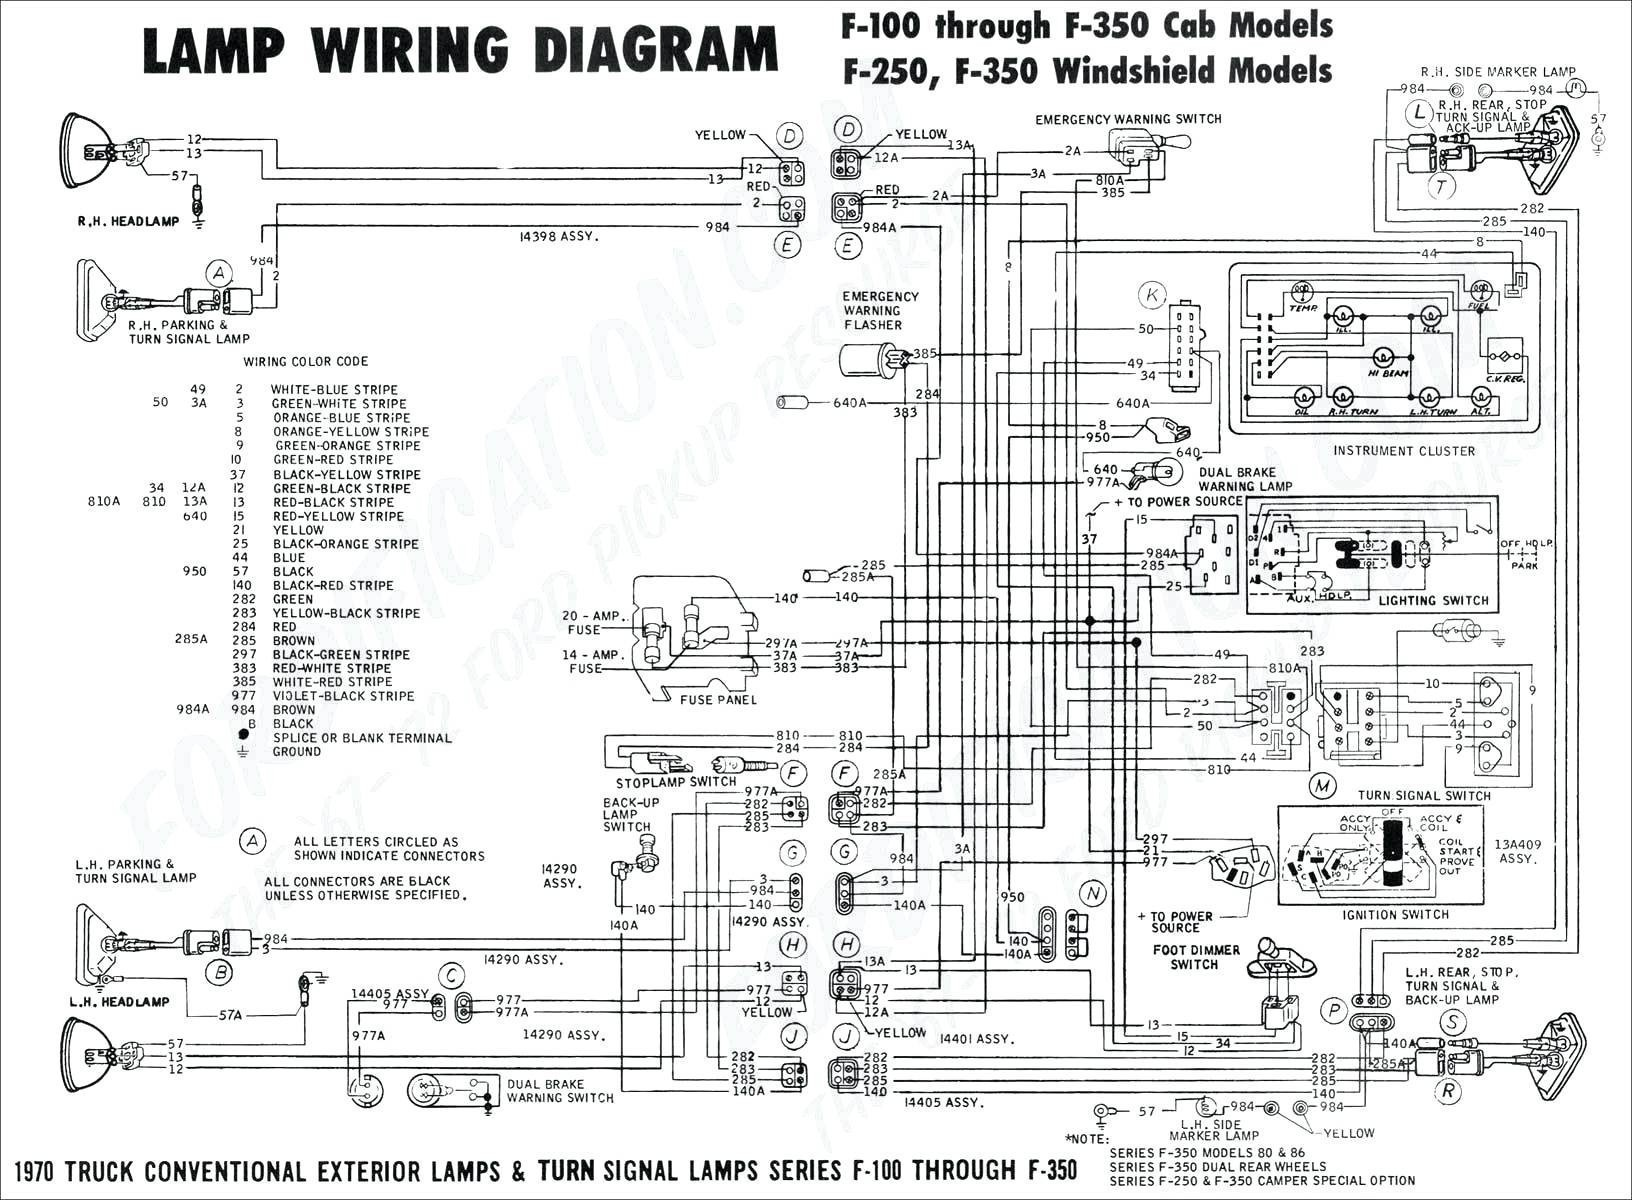 2002 ford Focus Wiring Diagram 46eb13 Wiring Diagram for A 2007 ford Focus Ses Of 2002 ford Focus Wiring Diagram Adt Focus Wiring Diagram Go Wiring Diagram